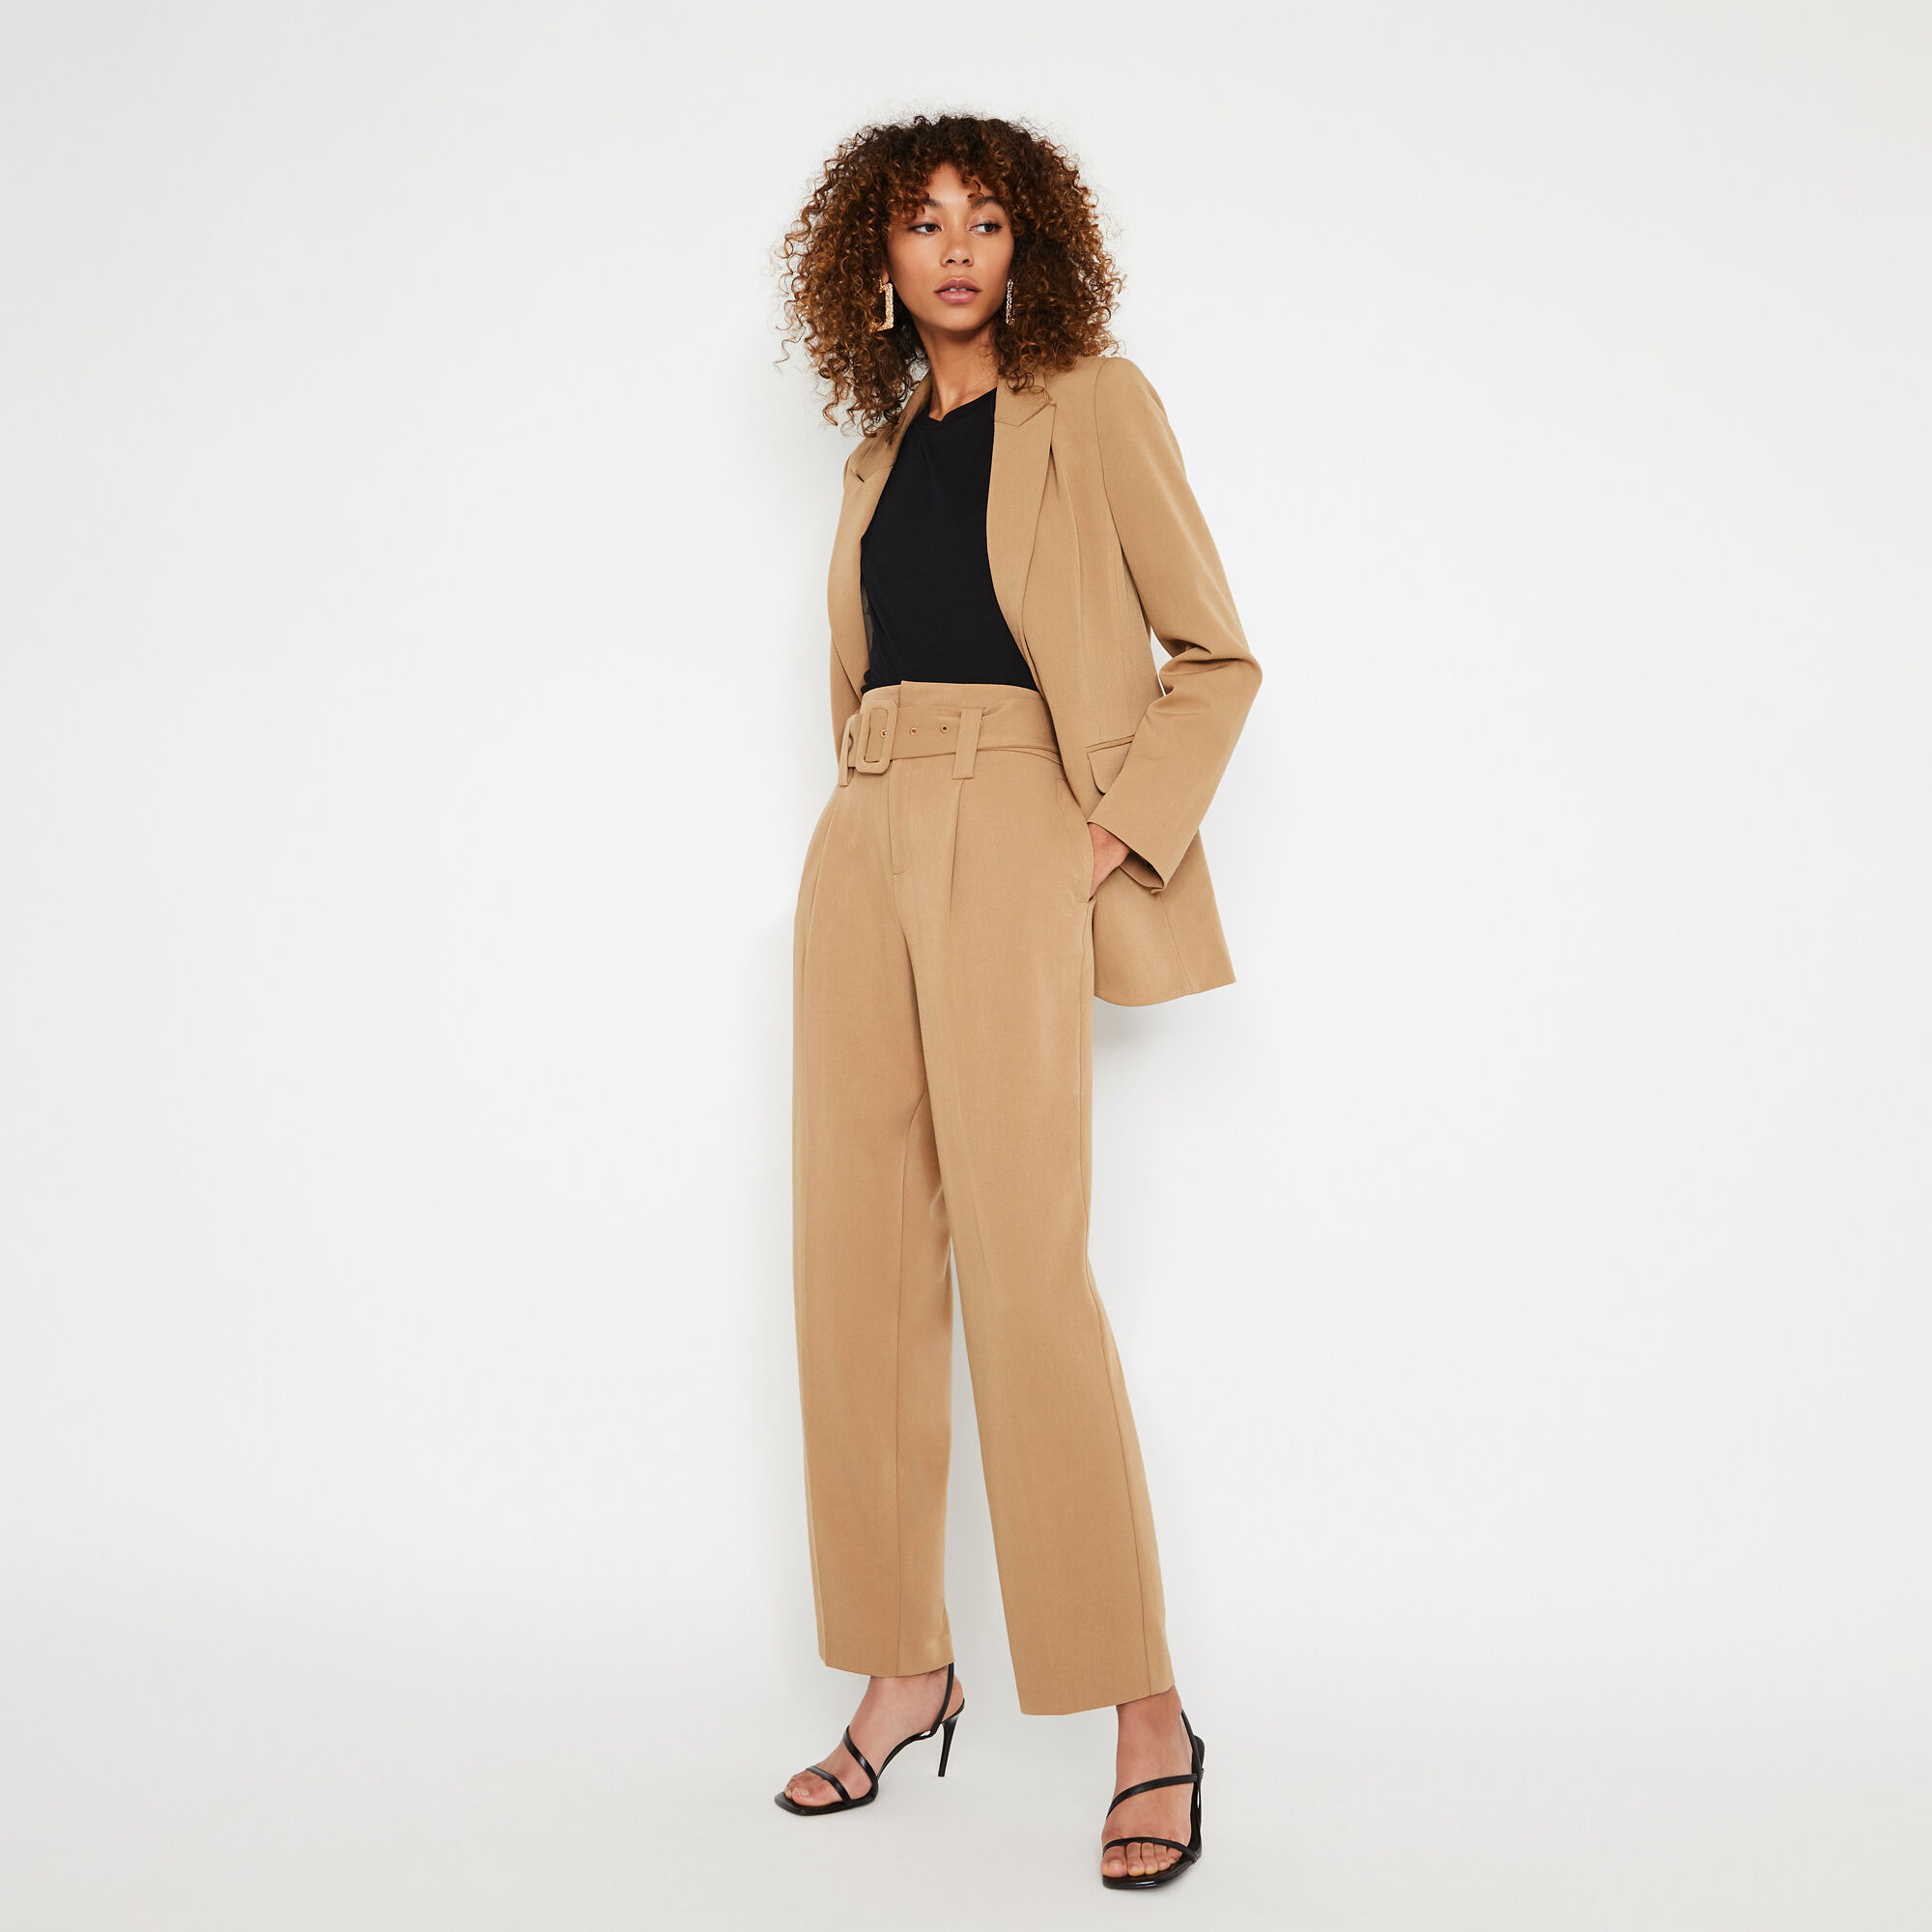 Warehouse, COVERED BUCKLE PEG TROUSER Camel 1